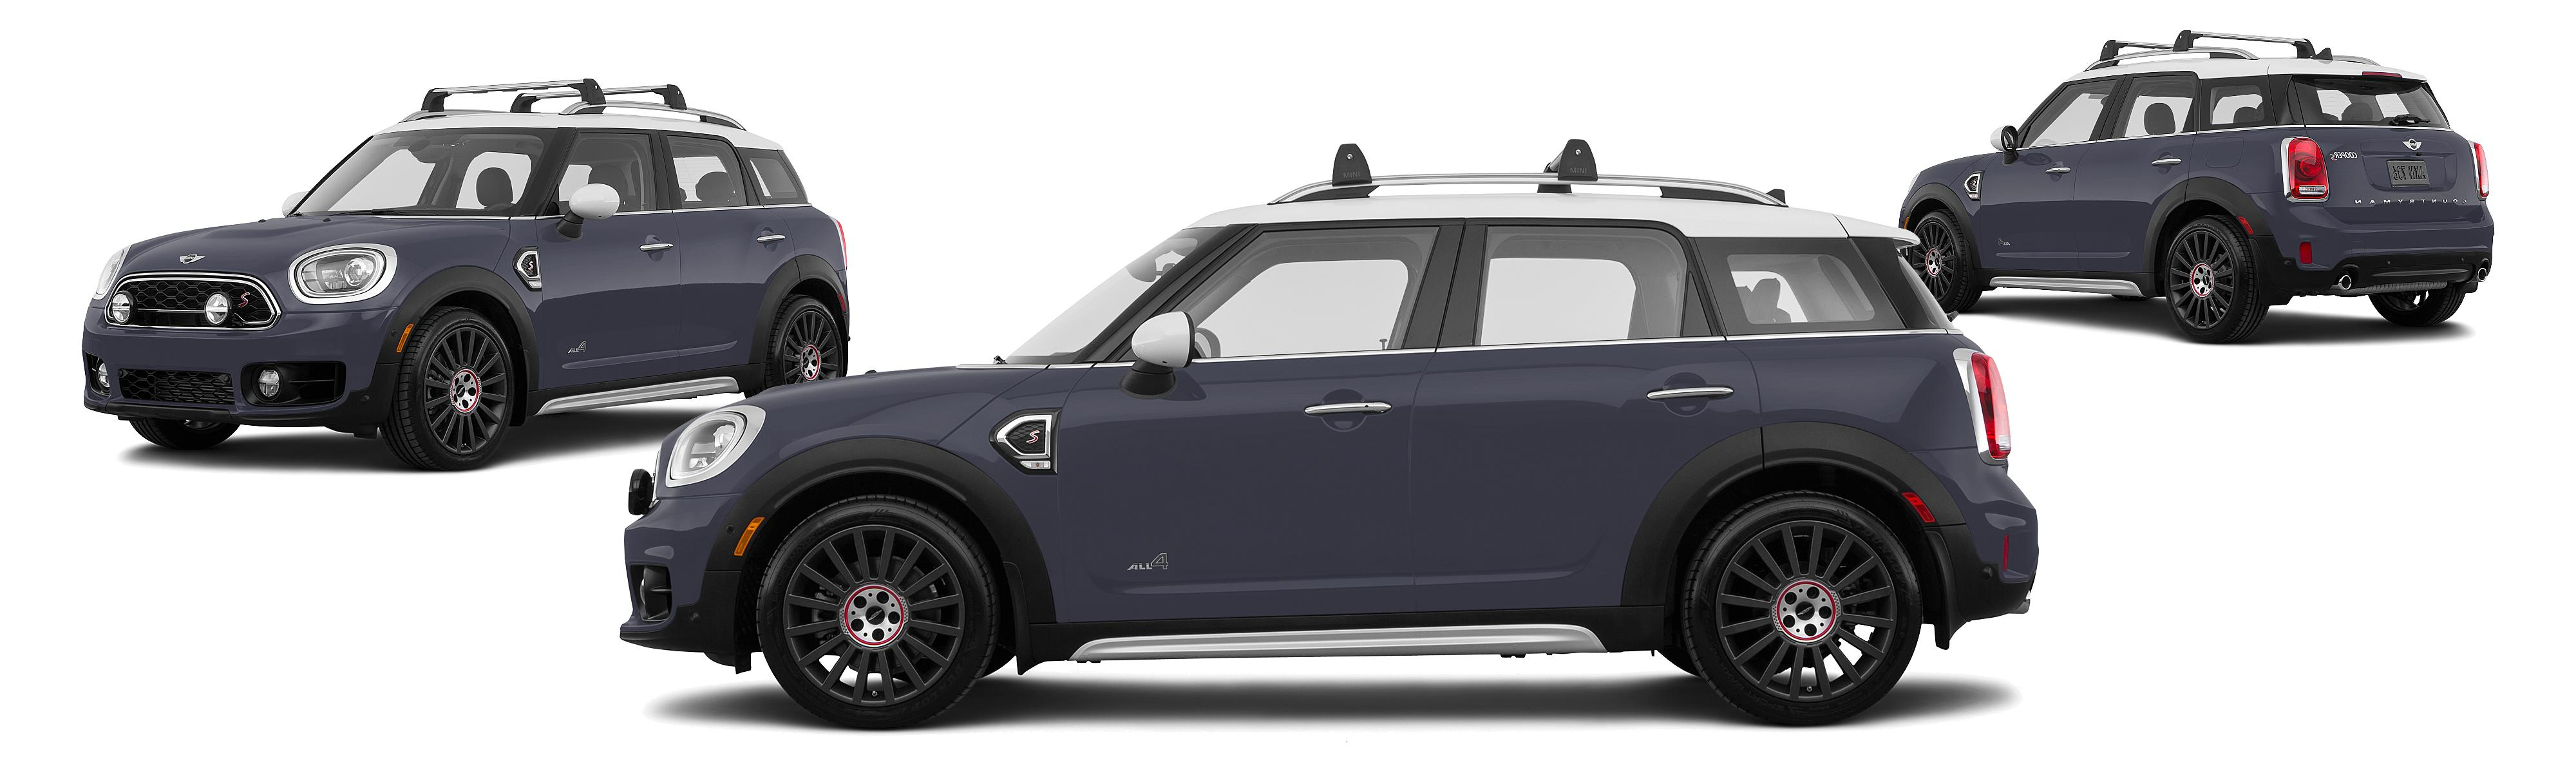 2017 Mini Countryman Awd Cooper S All4 4dr Crossover Research Groovecar